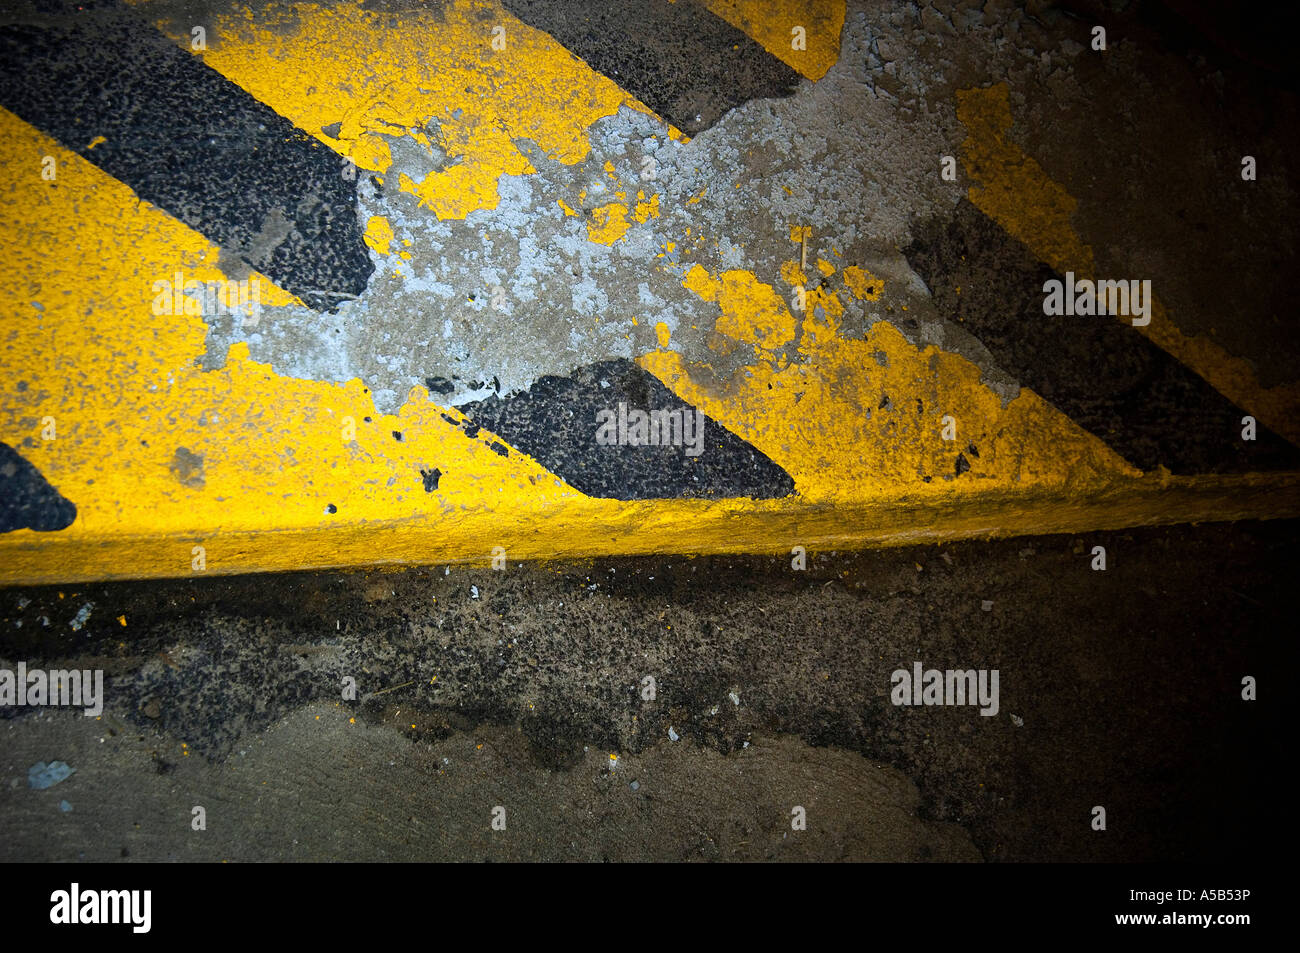 Black and yellow striped curb. - Stock Image